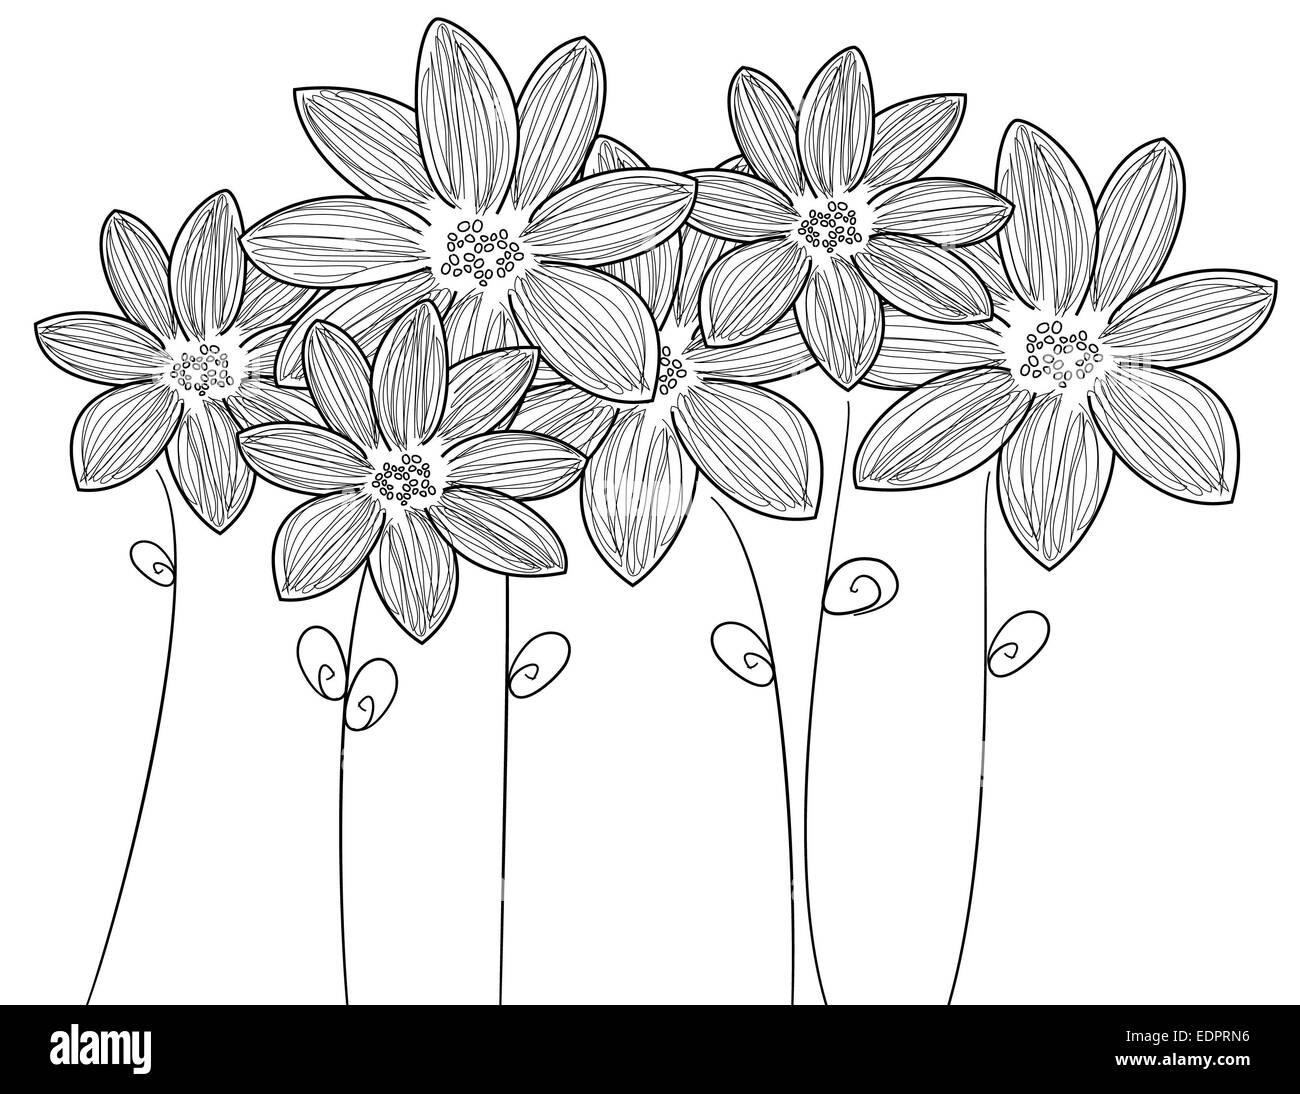 Delicate black & white illustration six fresh flowers with stems and leaves for decorative or romantic themes - Stock Image